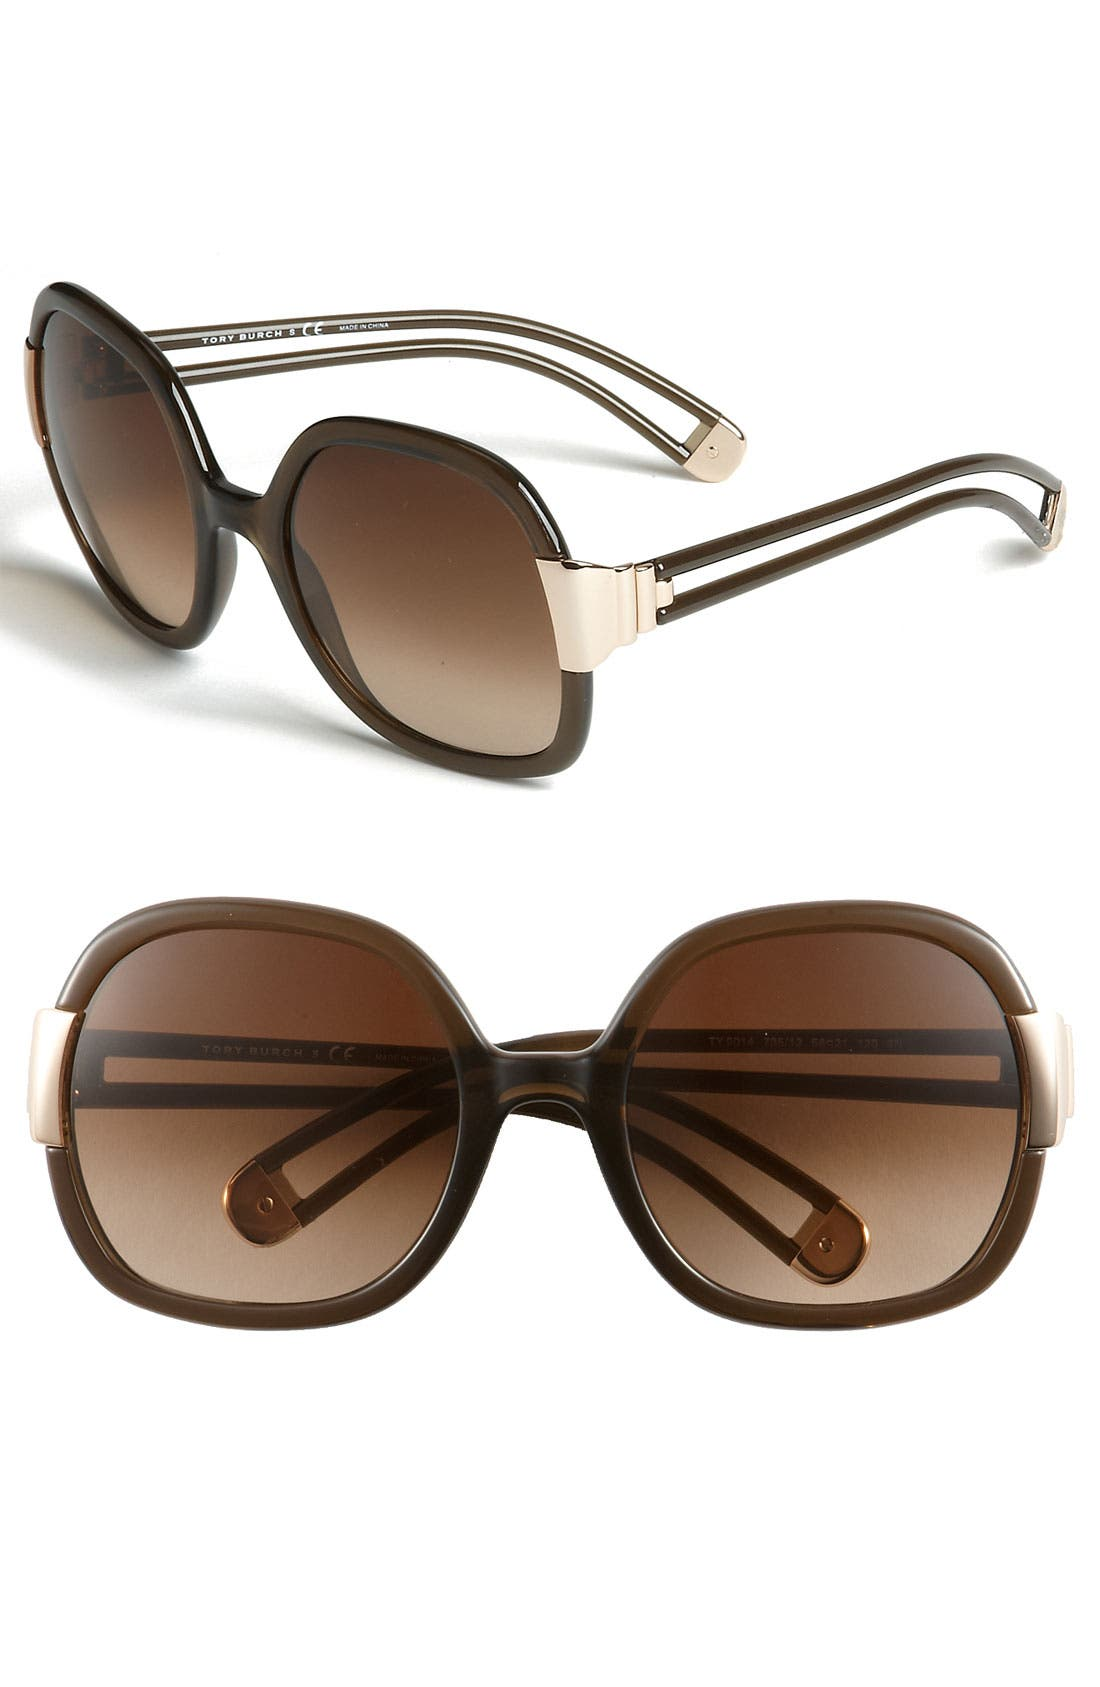 Main Image - Tory Burch 56mm Oversized Sunglasses